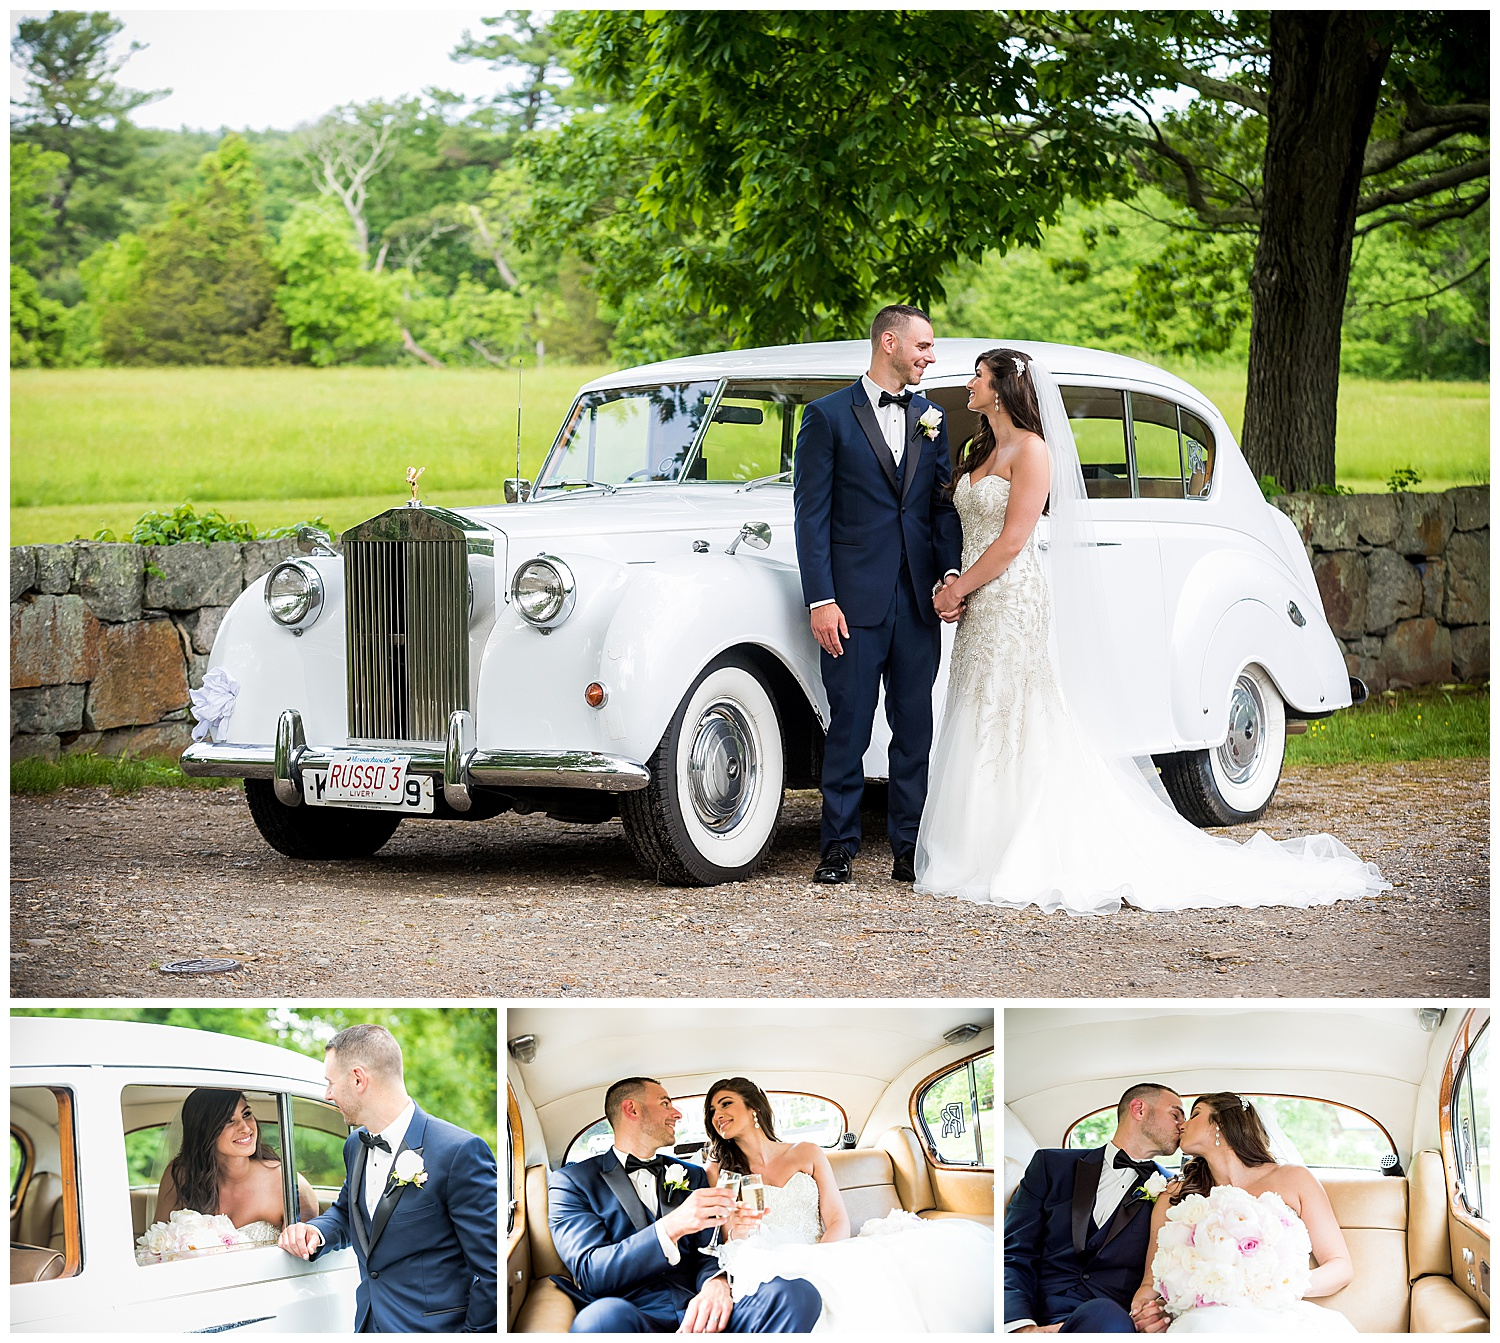 Maudslay Park - Bride & Groom Portraits